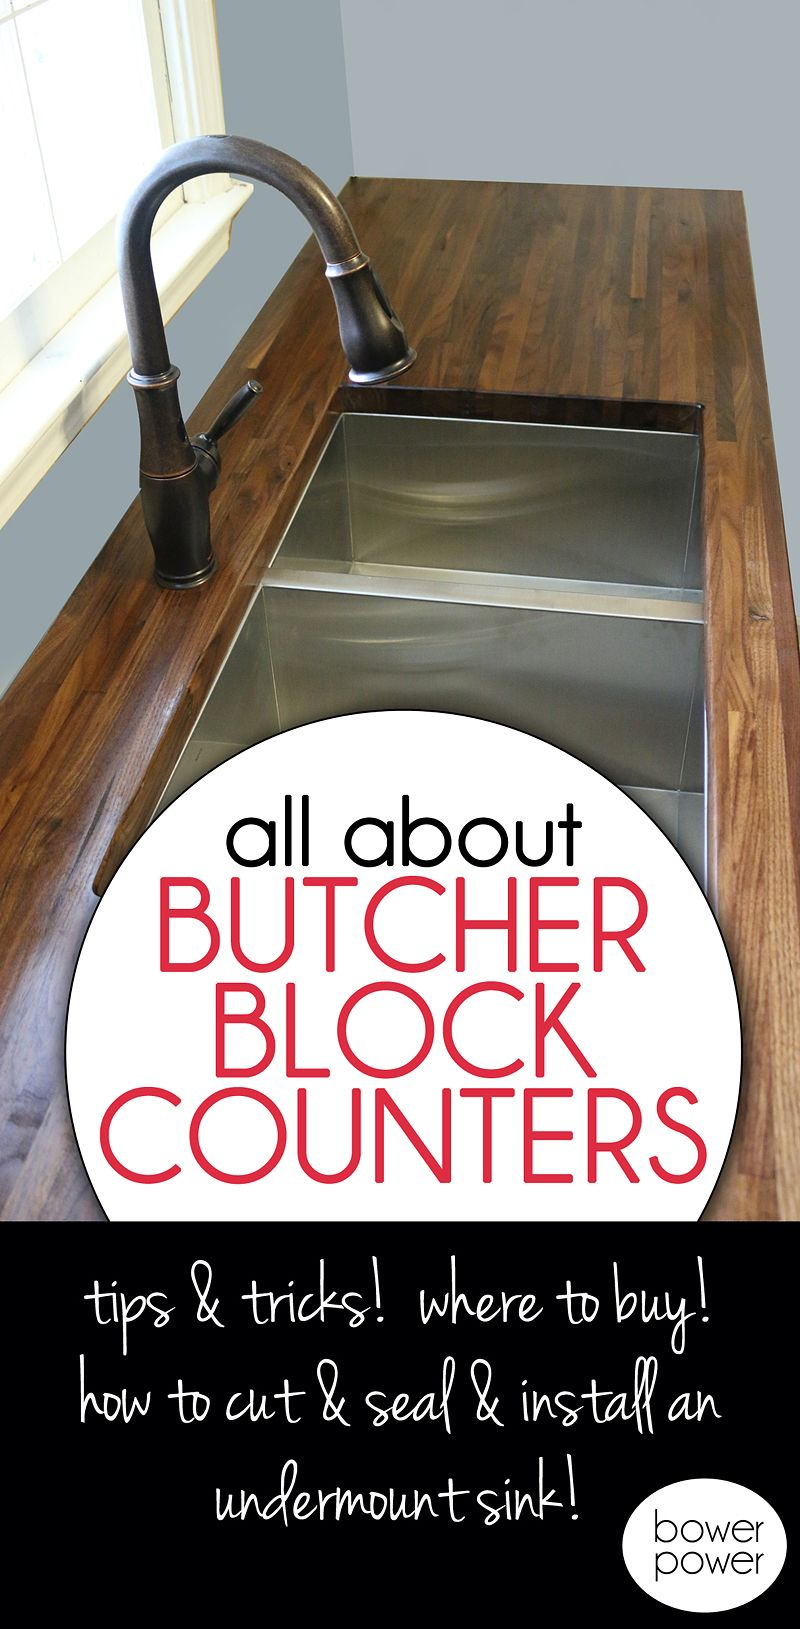 How to cut seal u install butcherblock countertops with an